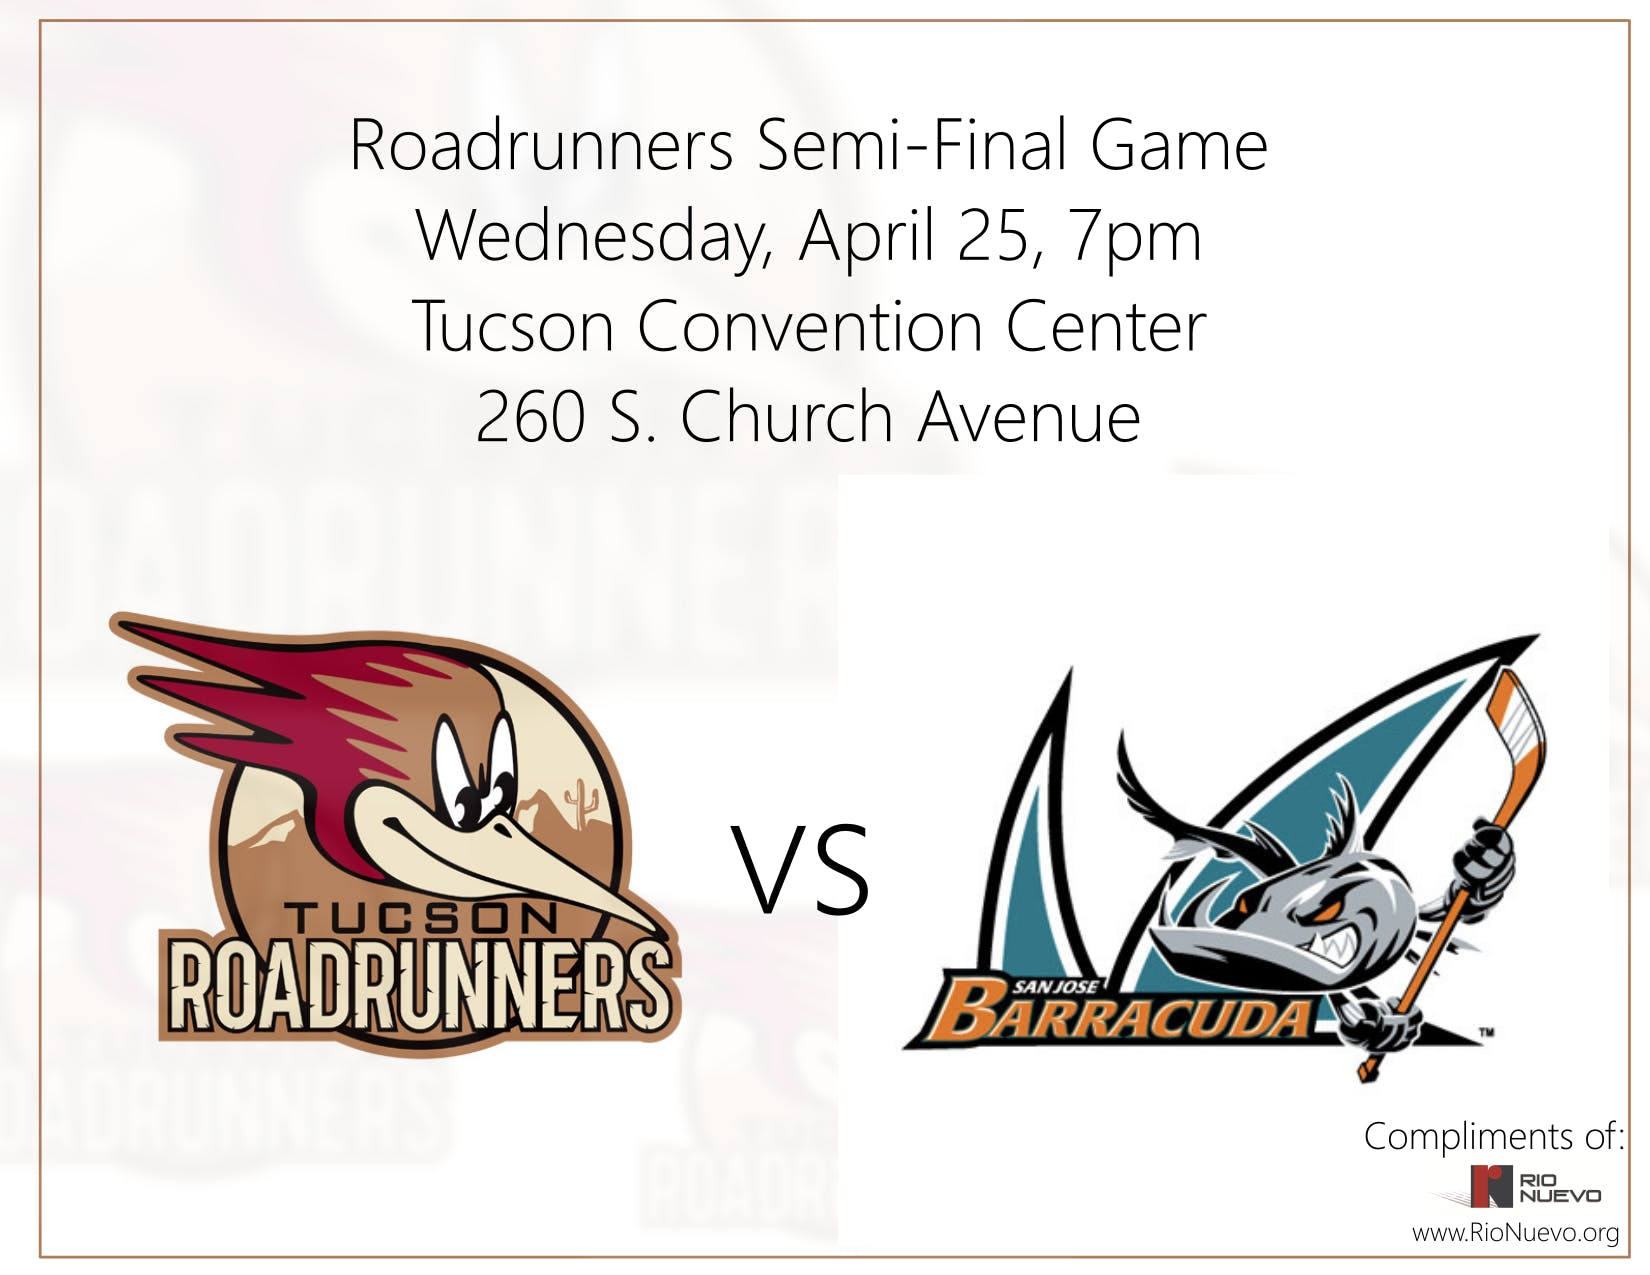 Tucson Roadrunners Tickets for Teachers!